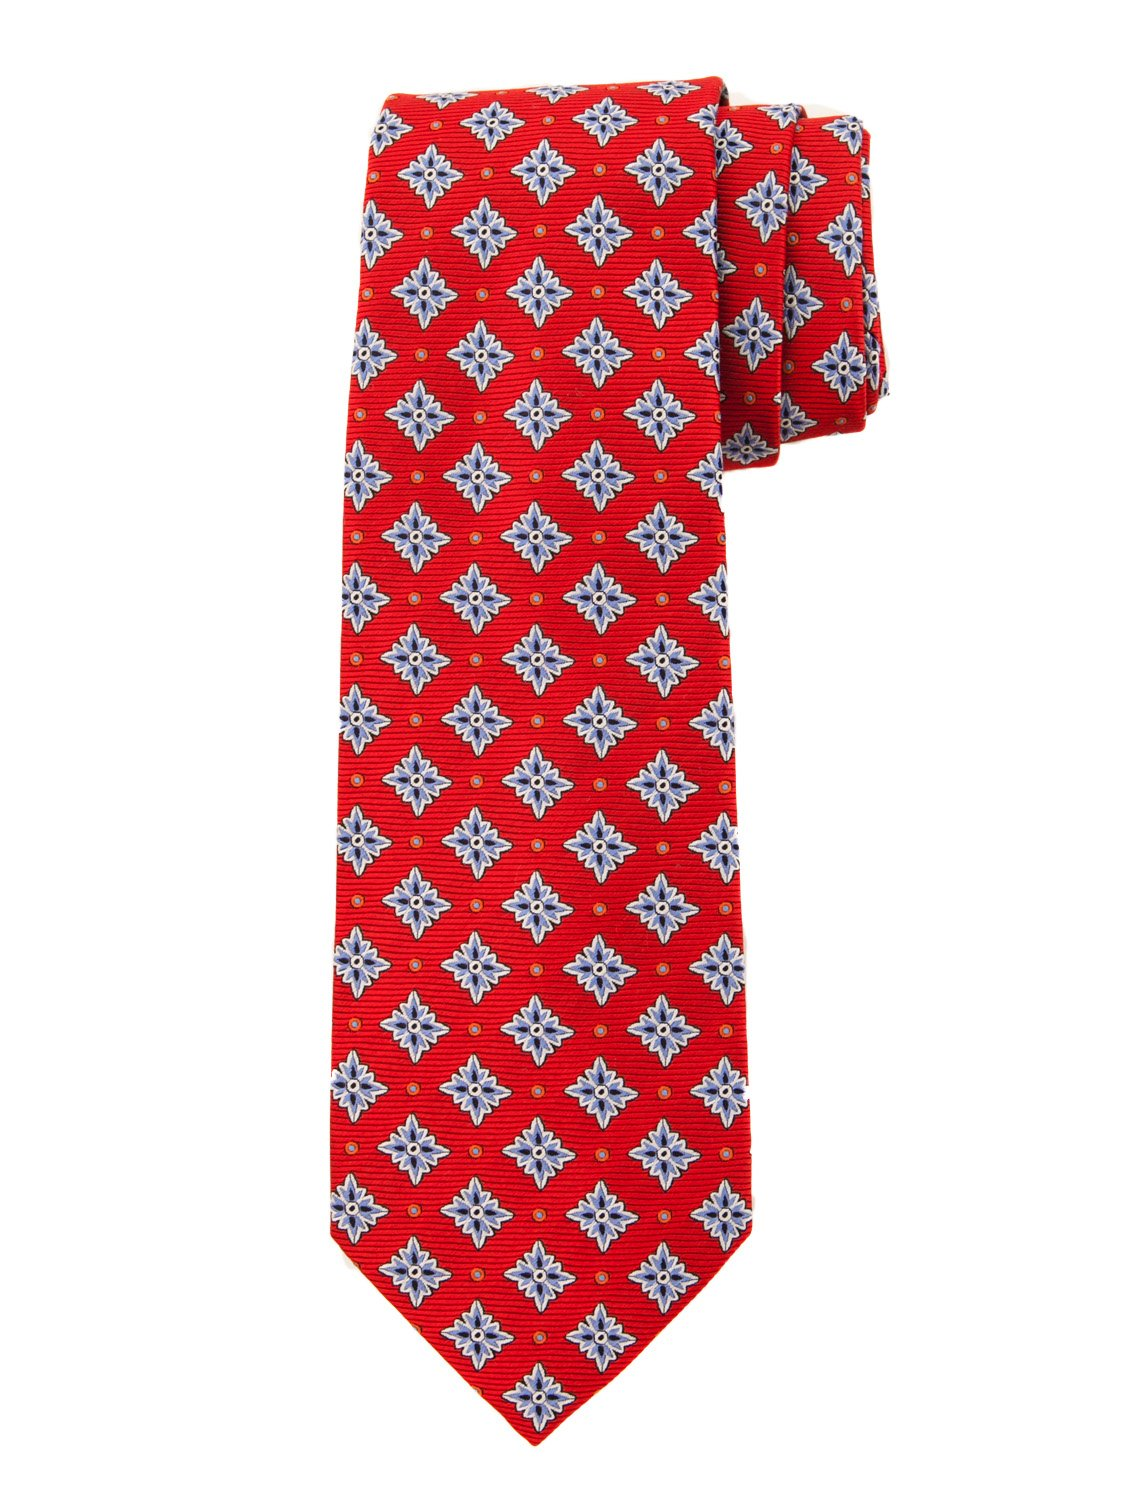 Robert Jensen Finest Silk Handmade Men's Neck Tie - Woven - Snowflake Motif (Red)